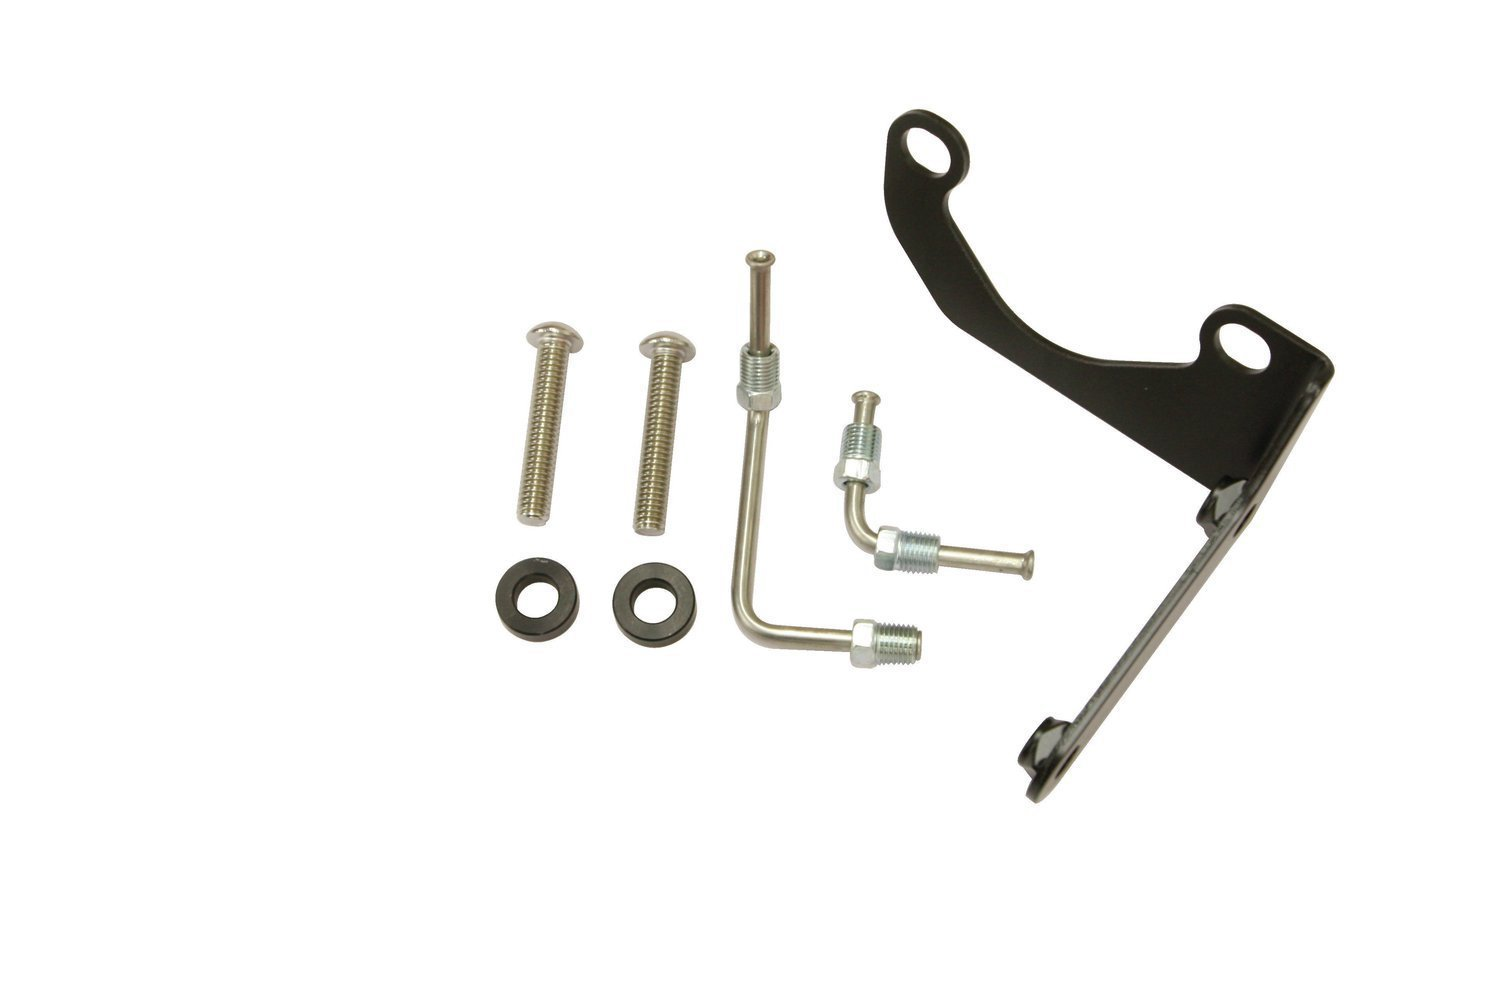 3. We'll begin by mounting the adjustable proportioning valve and use the prefabbed brake lines to mate it to the master cylinder.